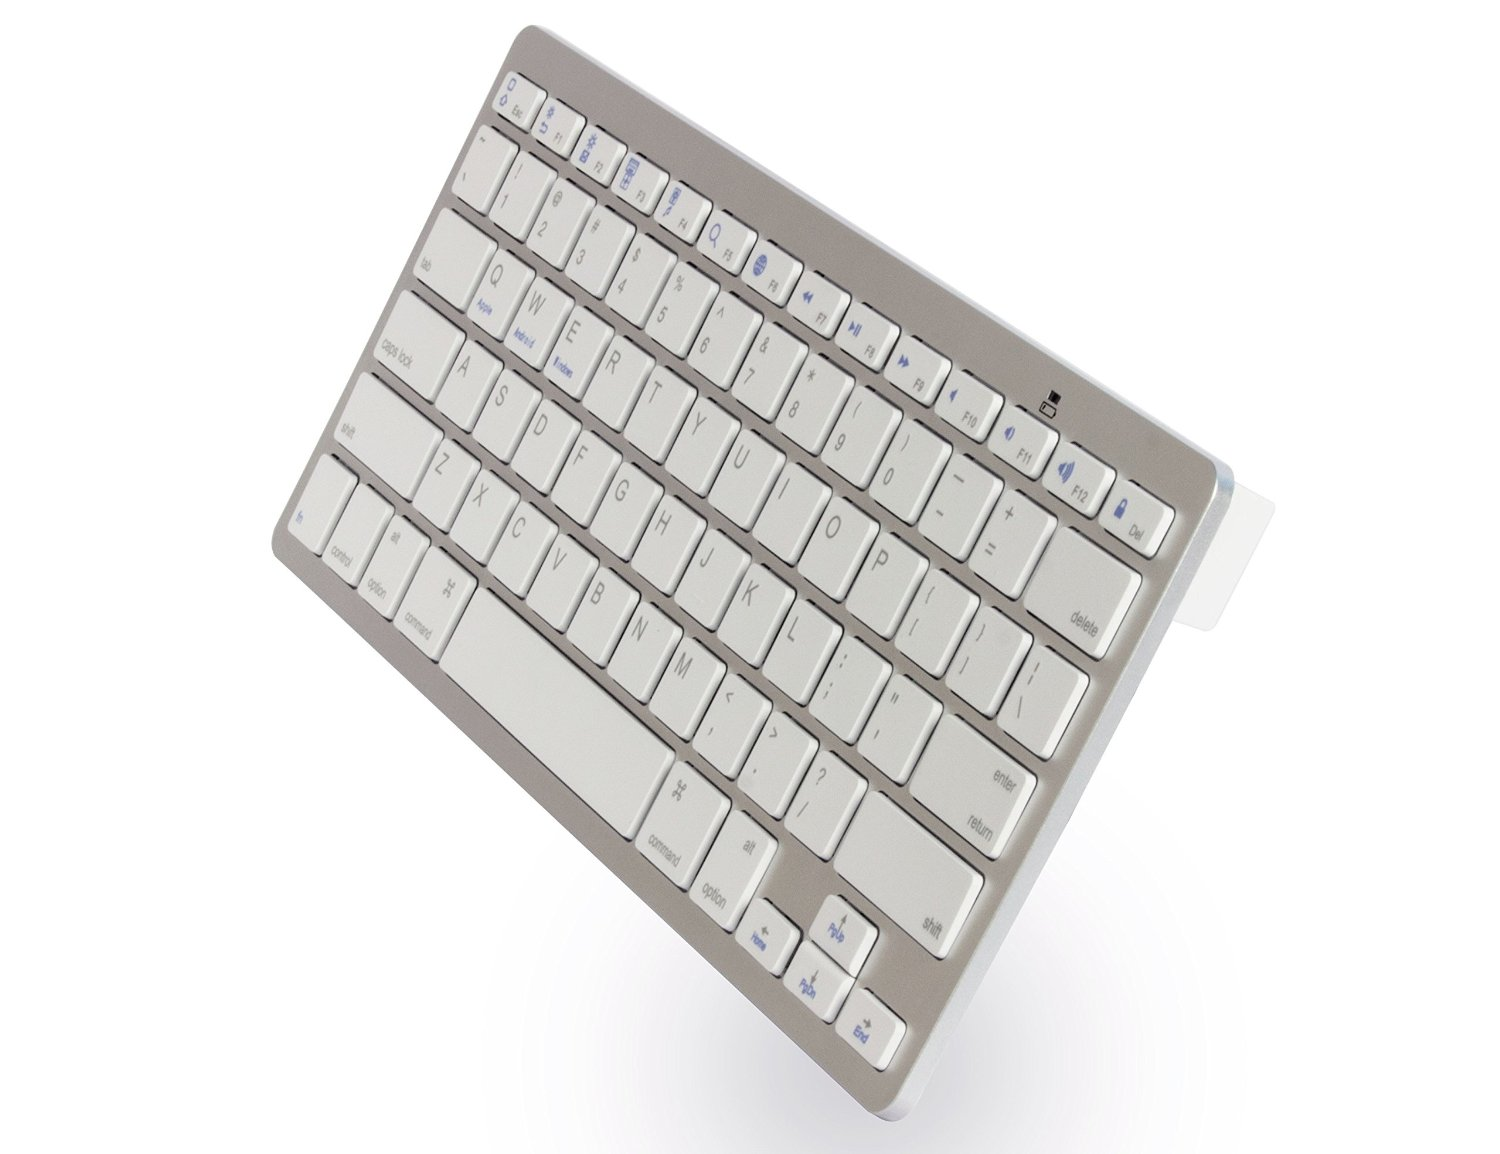 bluetooth_keyboard_blue1473245125.jpg